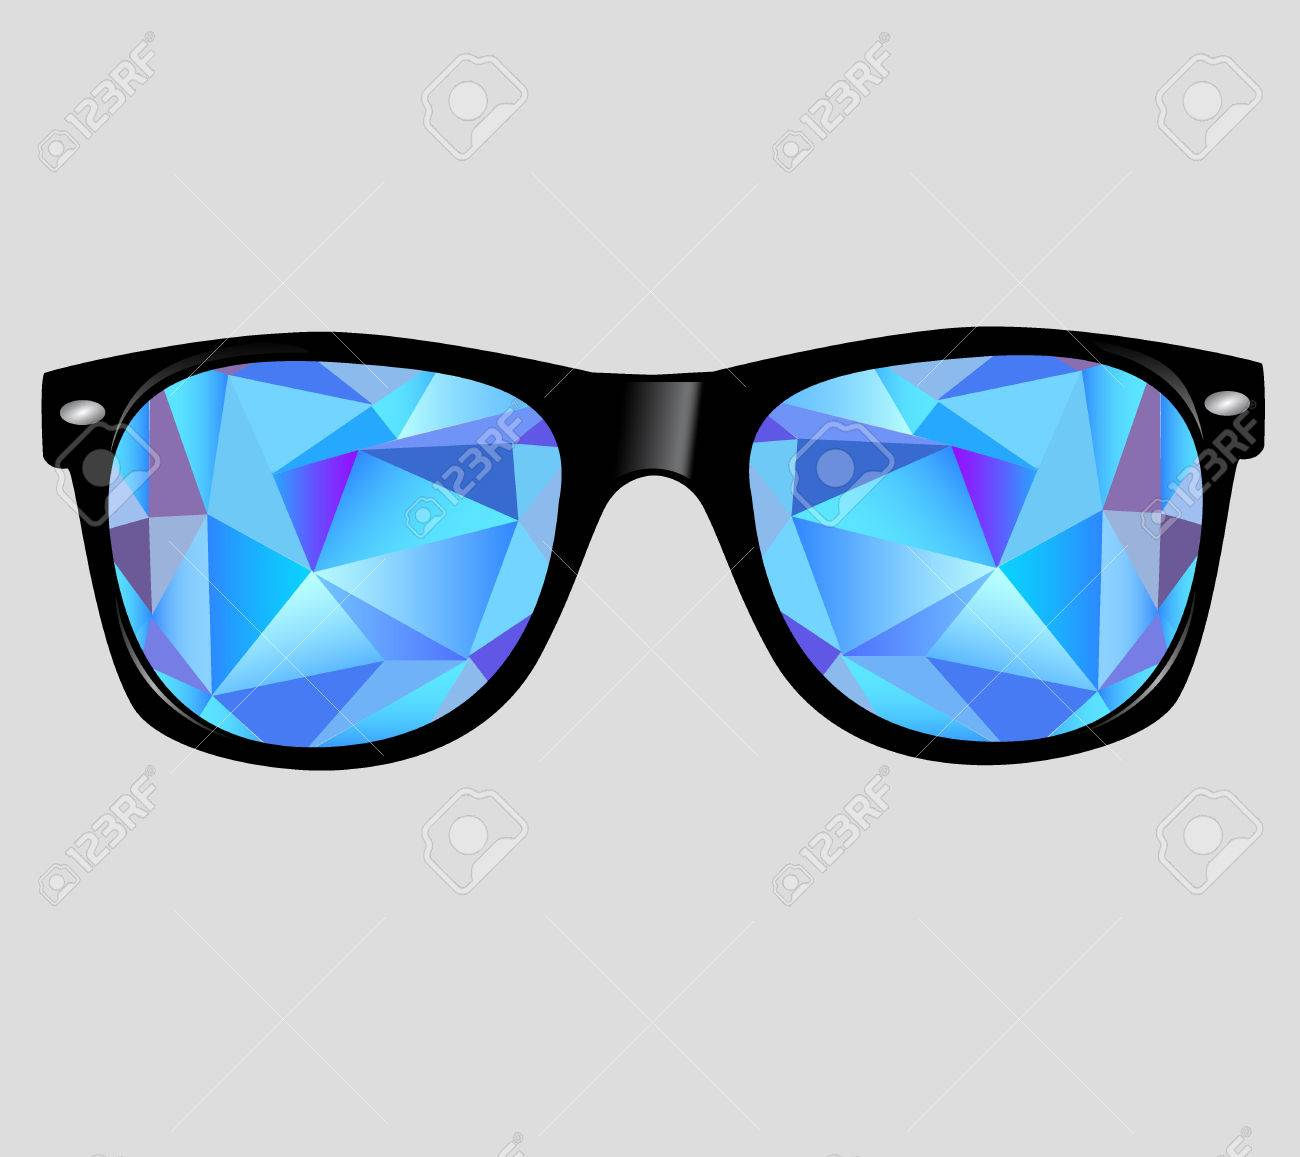 sunglasses with abstract geometric triangles. - 31104817